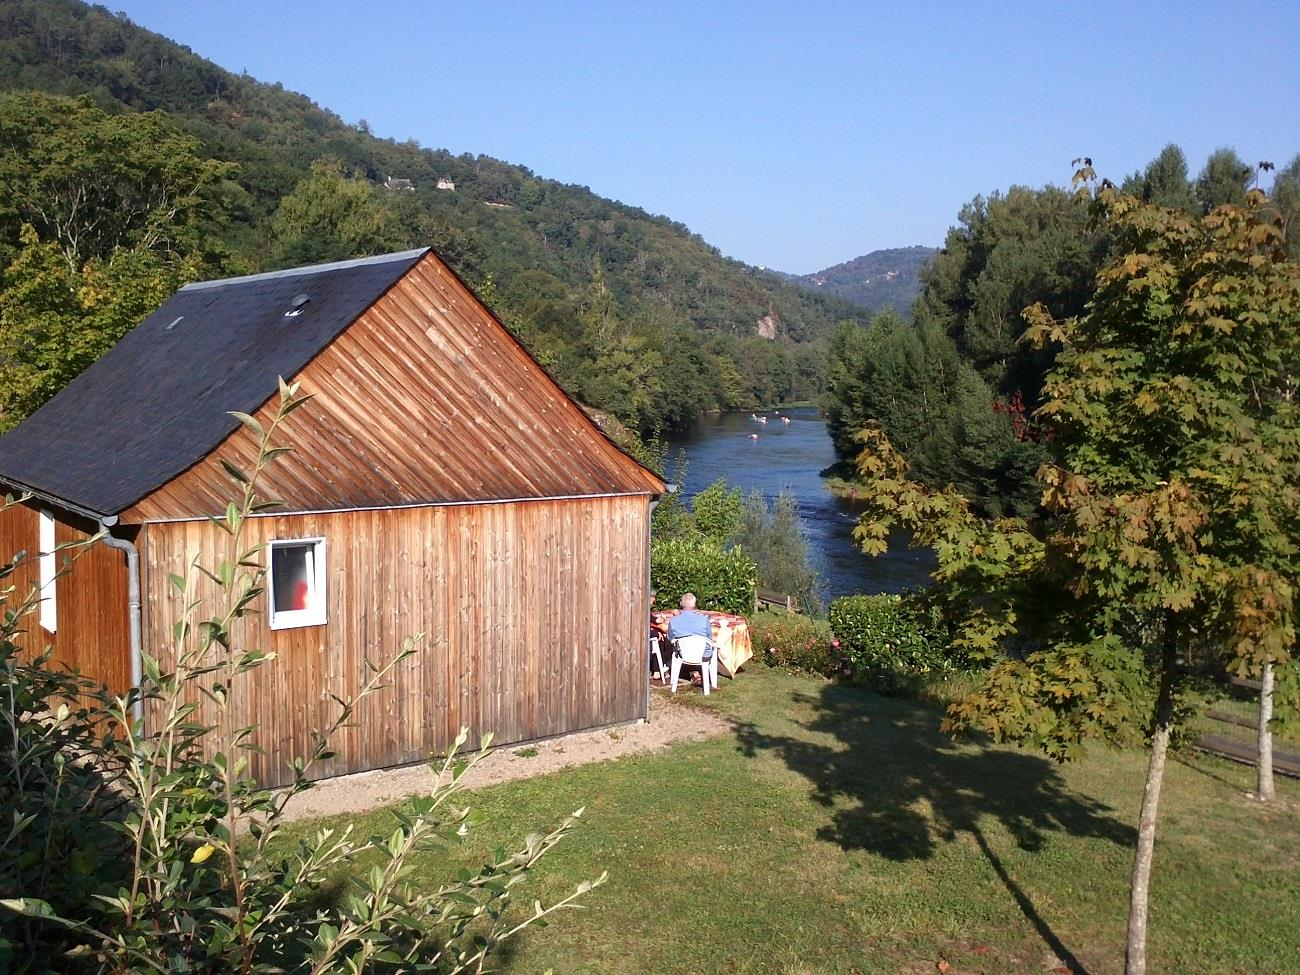 Accommodation - Chalet 32M² / 2 Bedrooms + Sheltered Terrace (Tv + Wifi) - Camping Qualité le Val de Saures